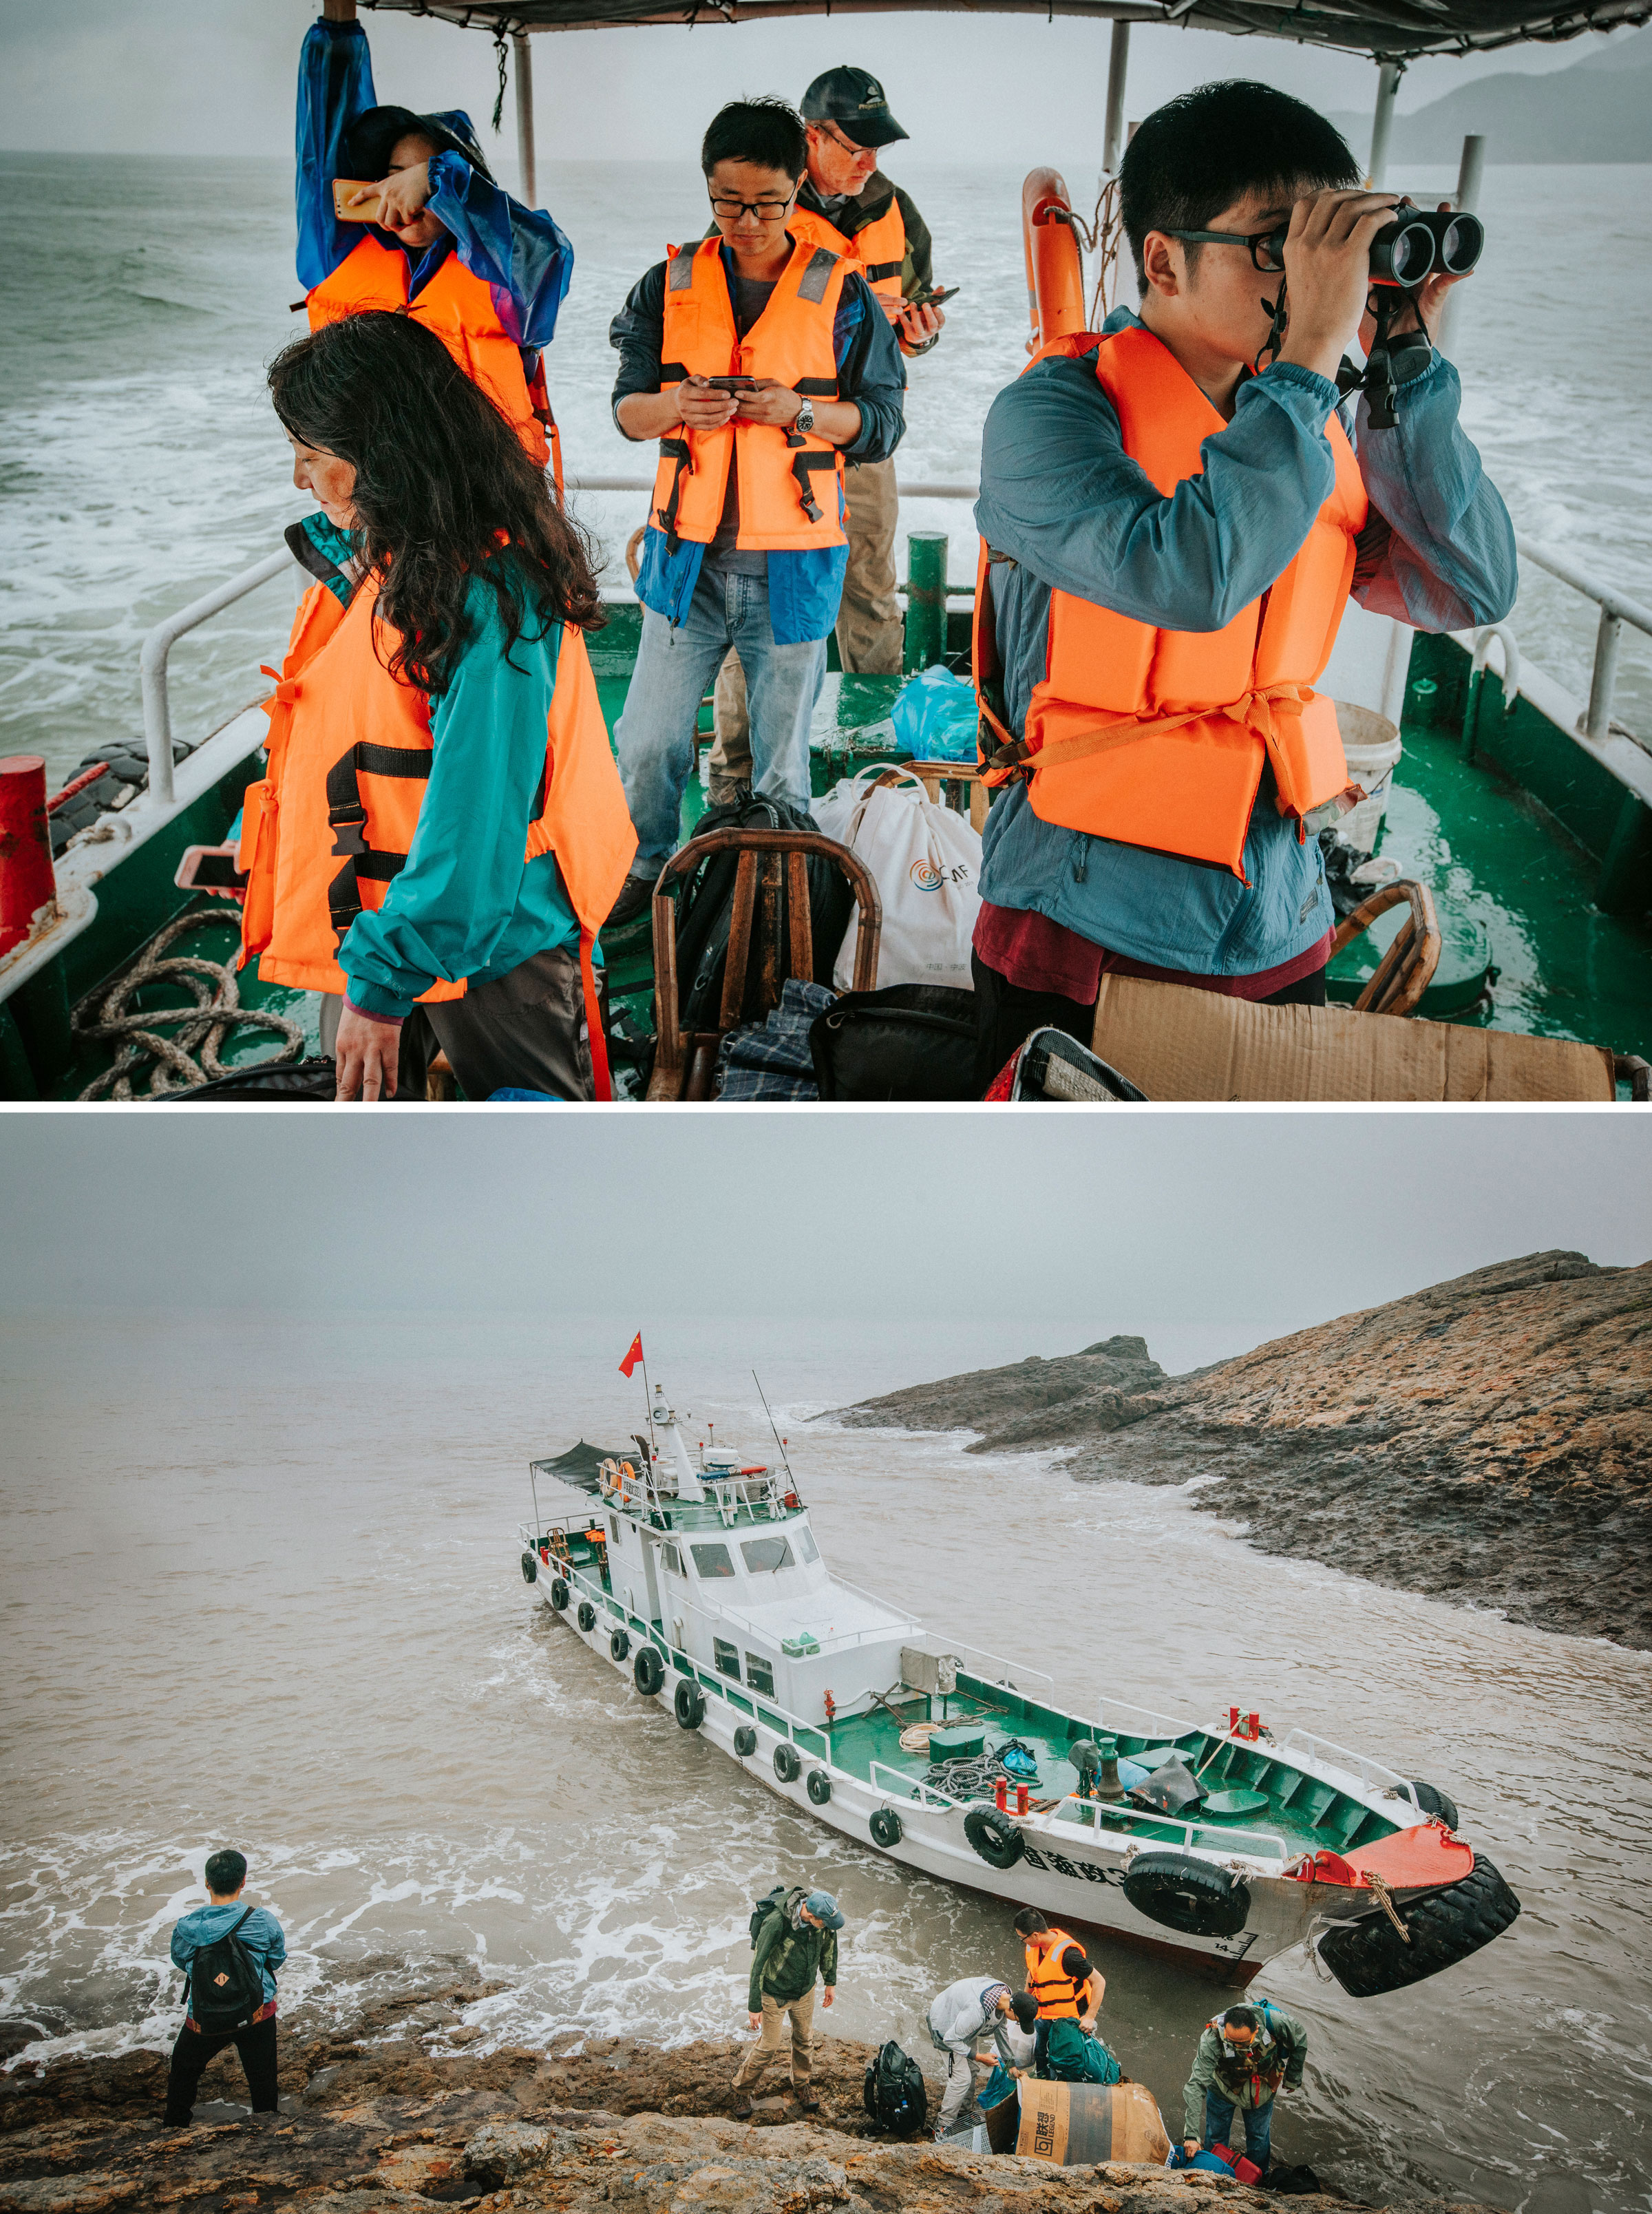 From top: Volunteer Cheng Qian (right) searches the skies for signs of Chinese Crested Terns as the team approaches the islet of Tiedun; the team unloads supplies. Photos: Morgan Heim